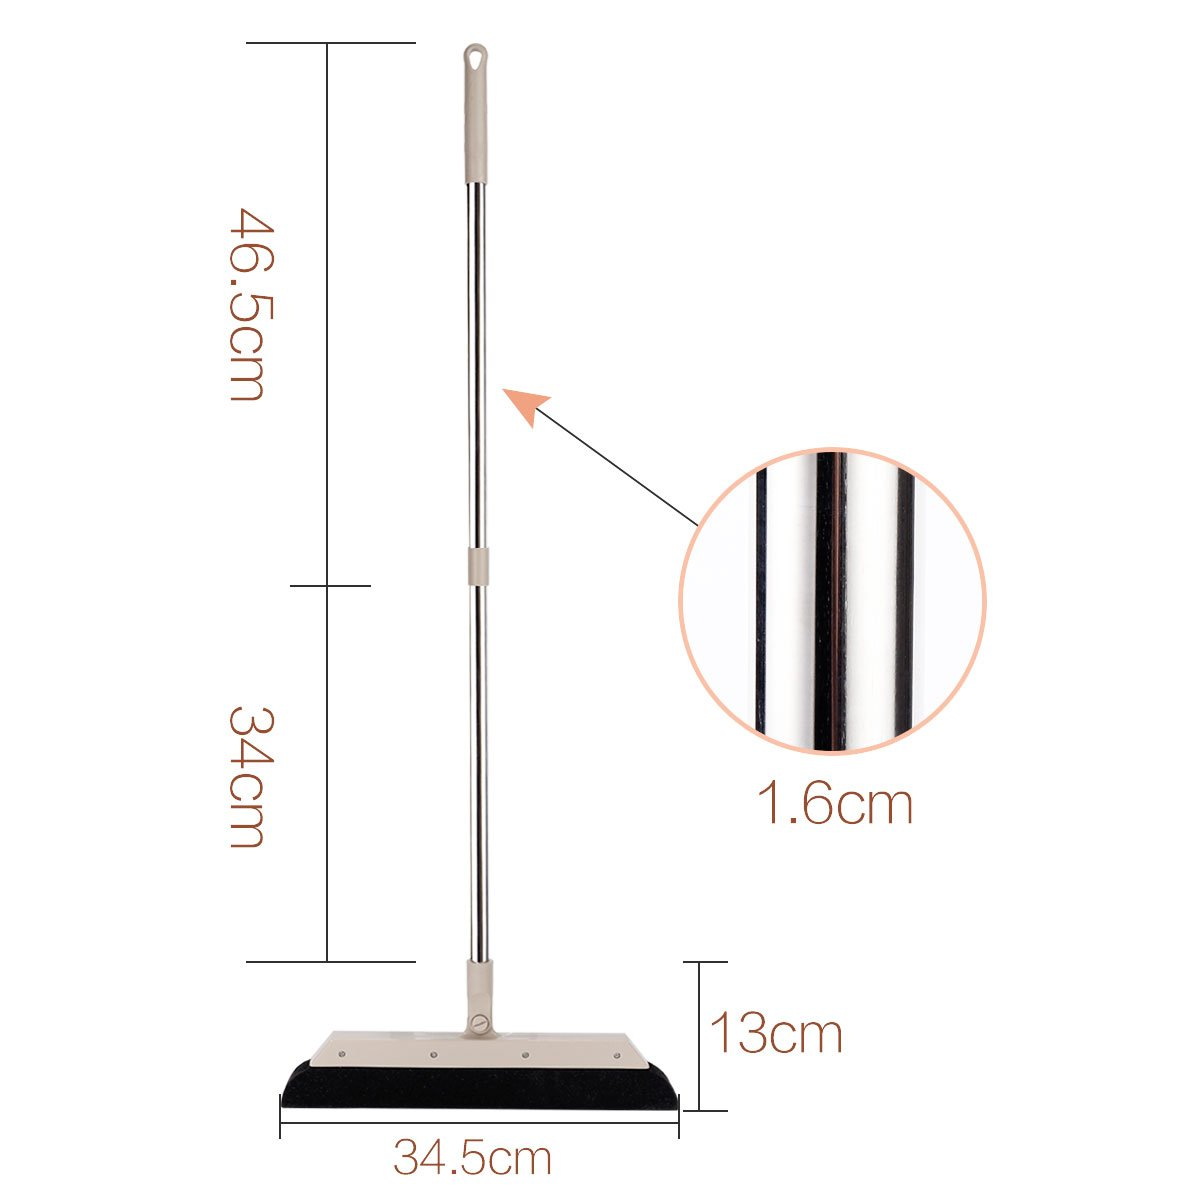 MEIBEI Sponge Broom Dust Cleaner, 37.4'' Adjustable Long Handle with 13.8'' Wide Blade, Perfect for Wood Tile Marble Carpet & Glass by MEIBEI (Image #5)